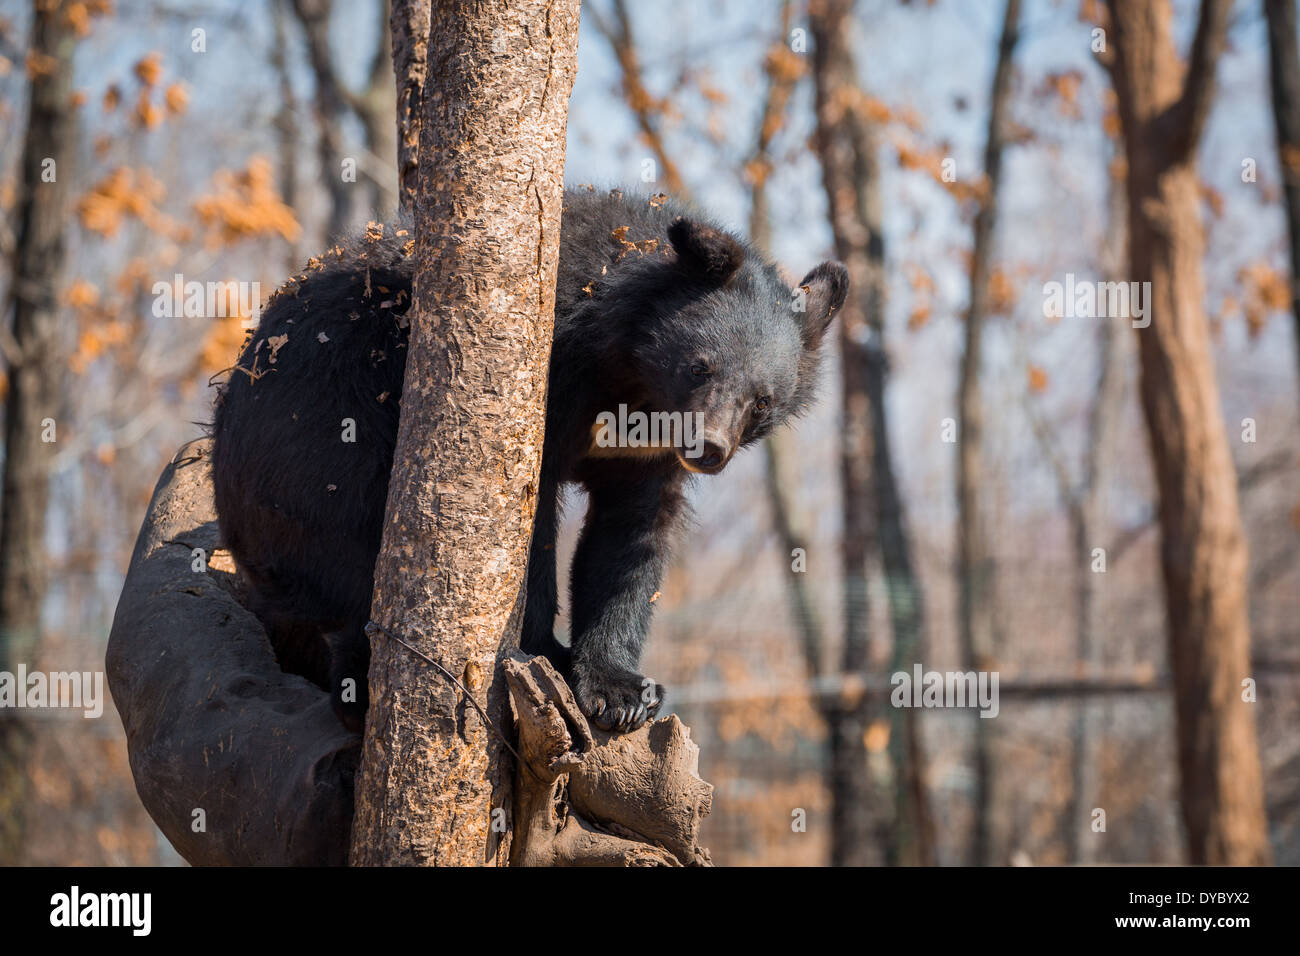 Asiatic black bear sittng on the tree in zoo - Stock Image